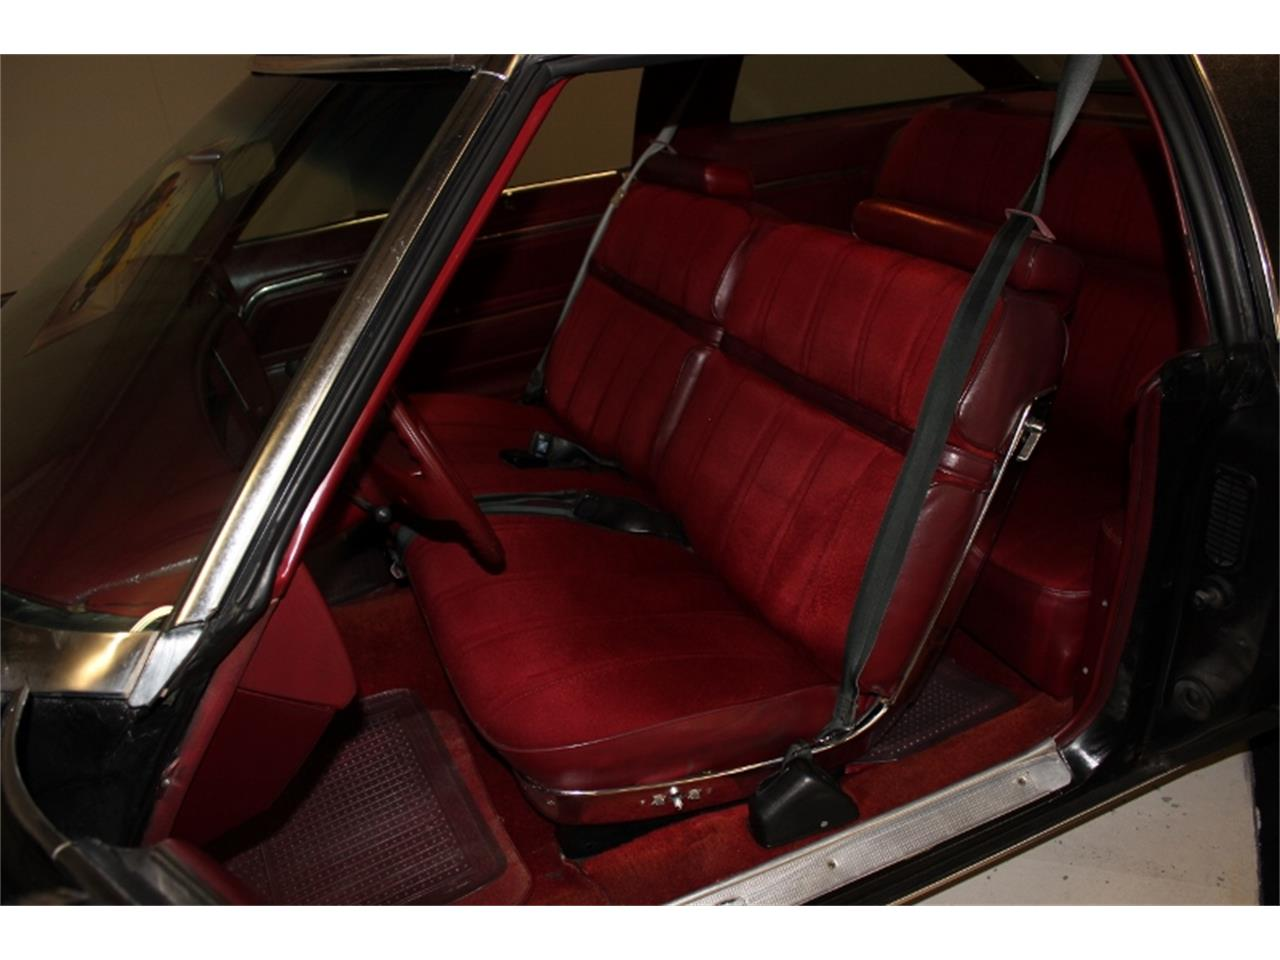 Large Picture of 1974 Chevrolet Caprice located in Lillington North Carolina - $28,500.00 Offered by East Coast Classic Cars - JUO8